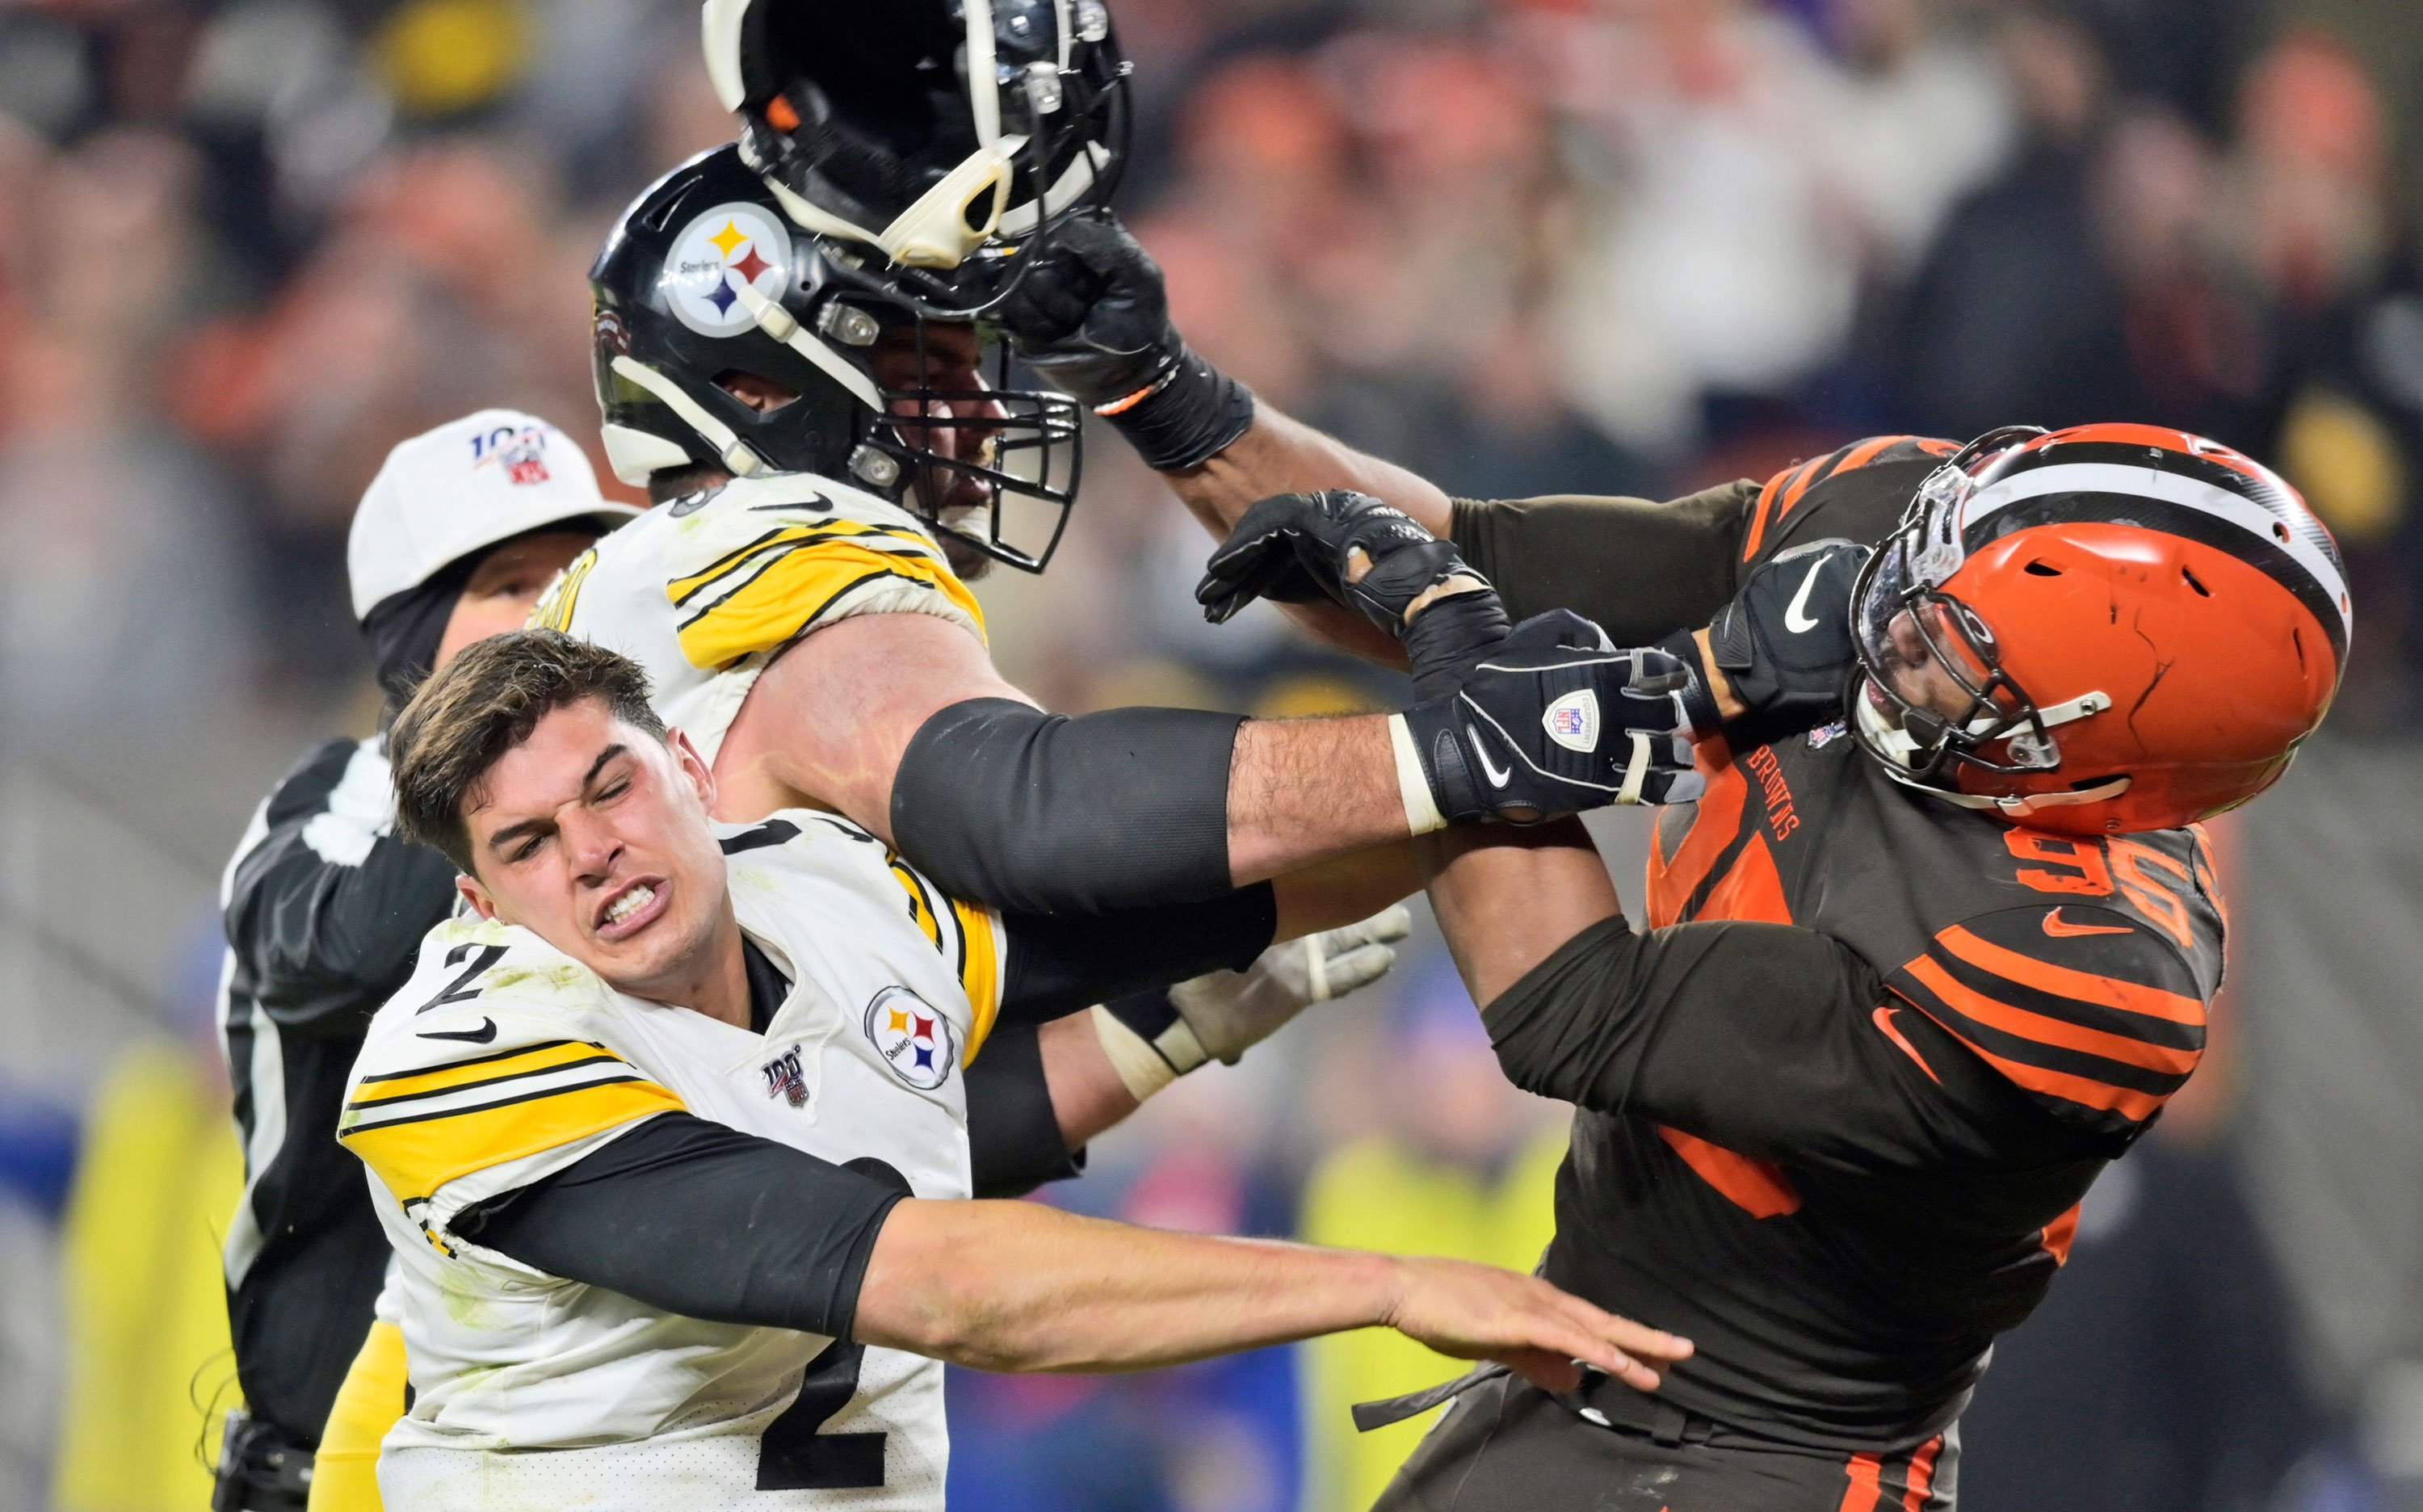 Cleveland Browns' rare win over the Pittsburgh Steelers ends in a helmet swing and a brawl